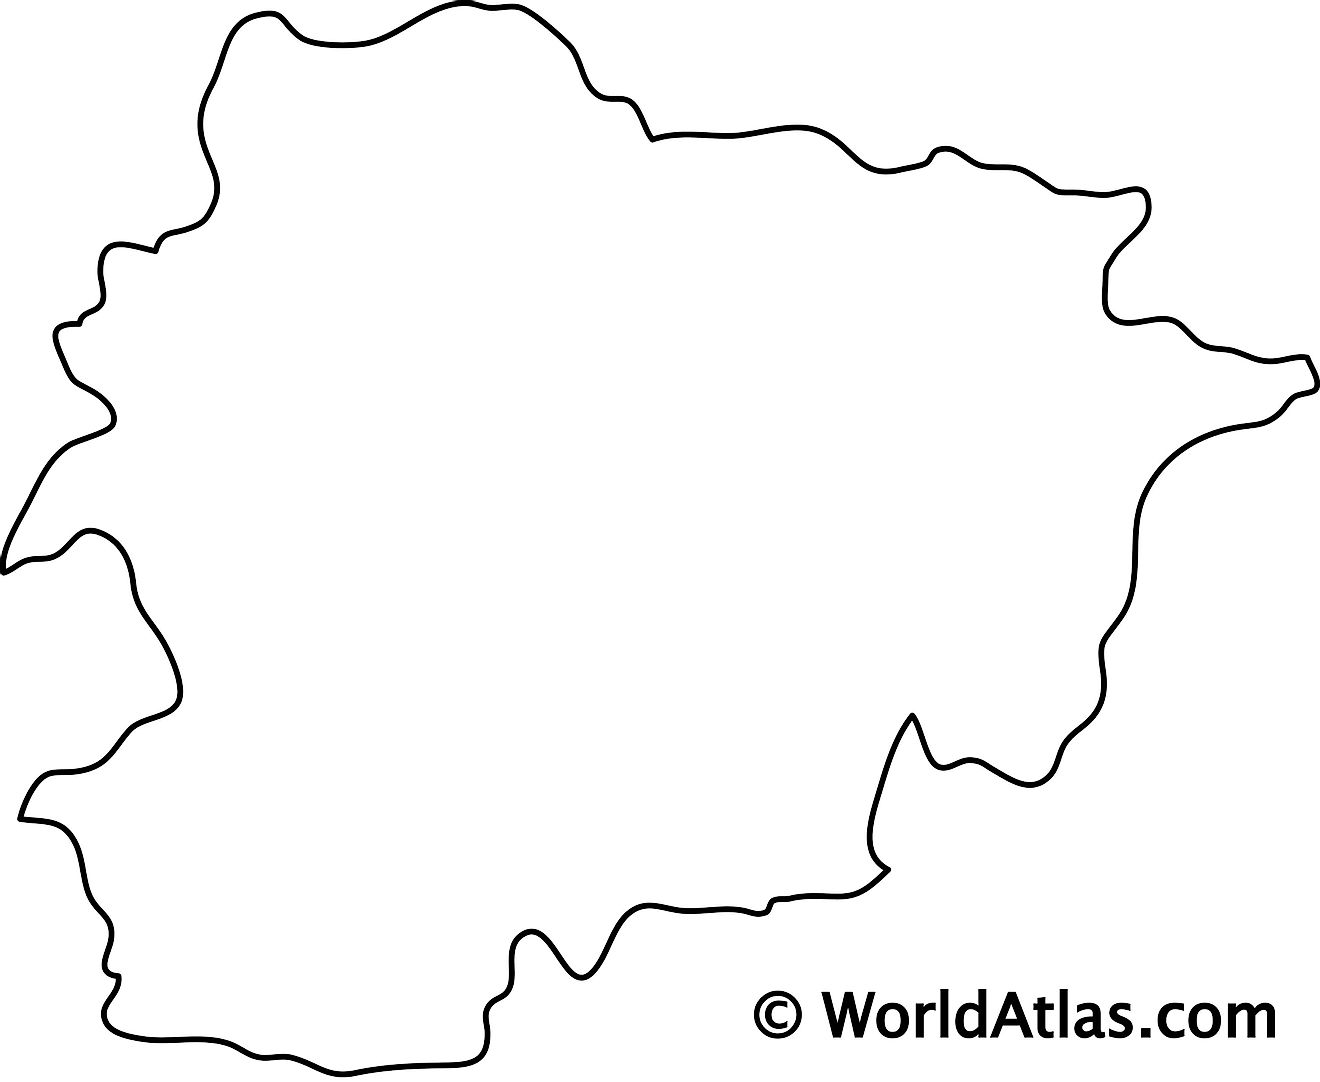 Blank Outline Map of Andorra